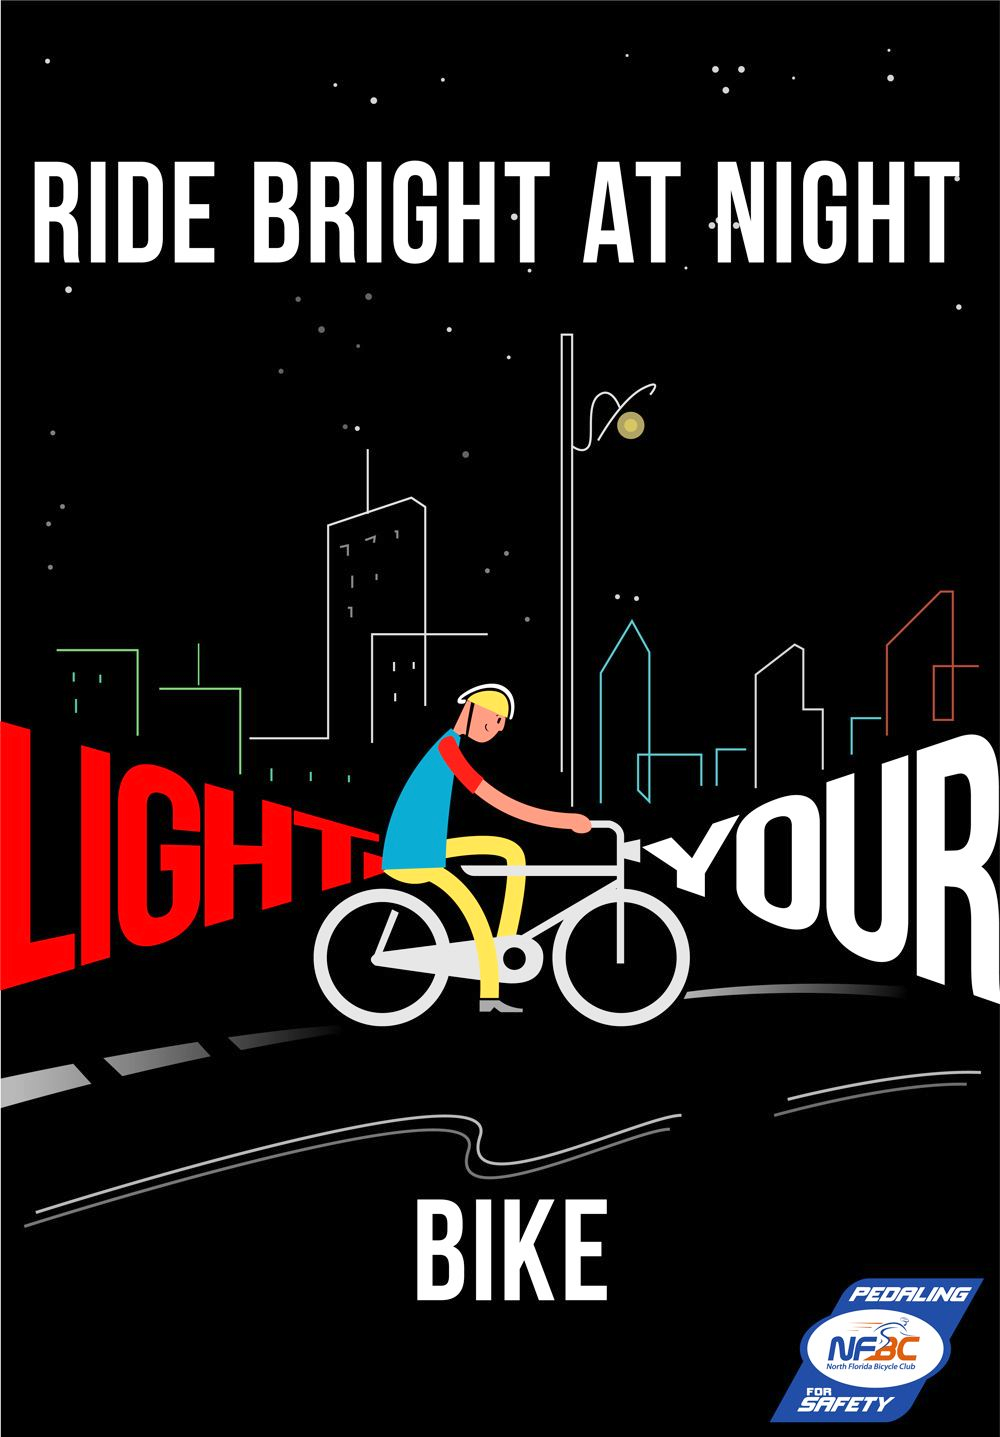 Be seen, BE SAFE. Avoid accidents by lighting your bike